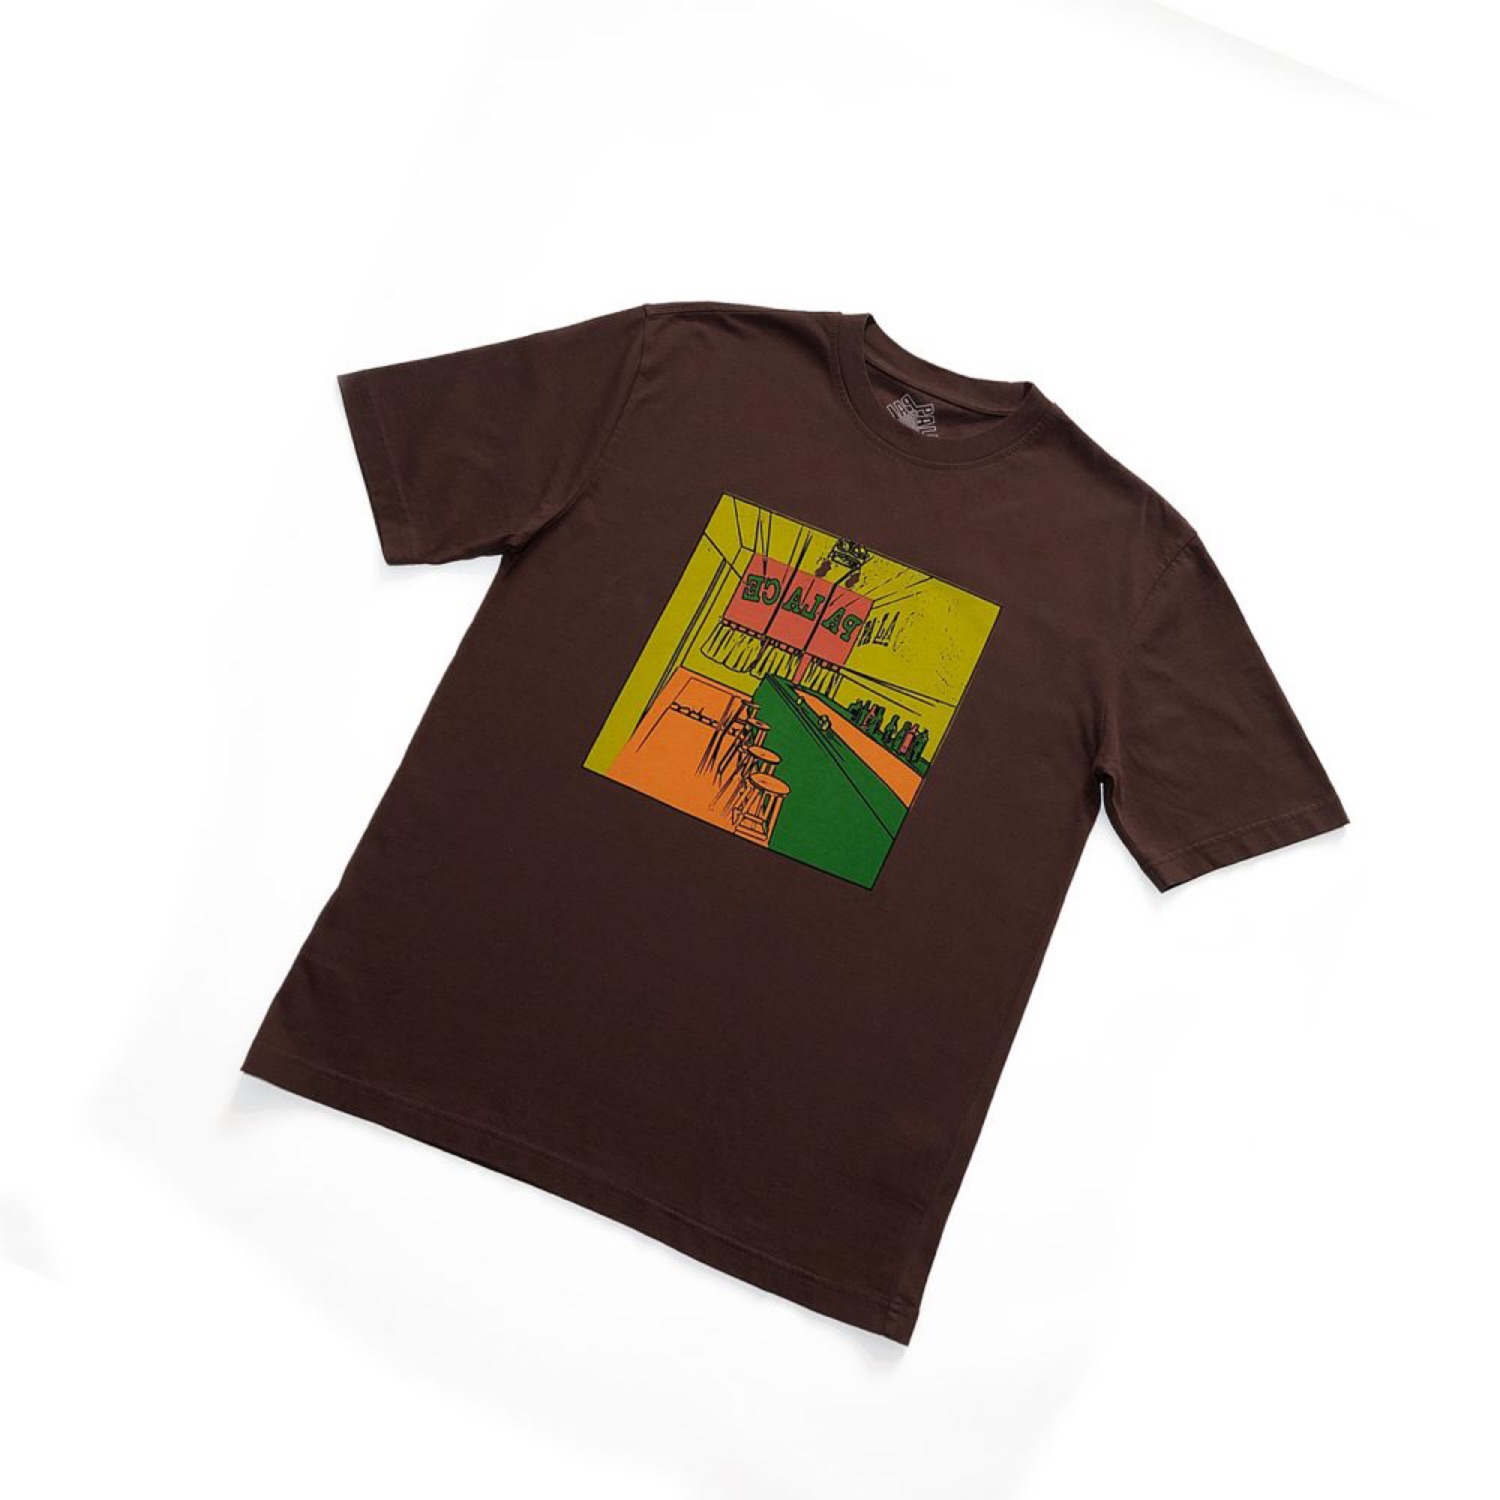 Palace Scheisse Face Tee Brown Size Medium